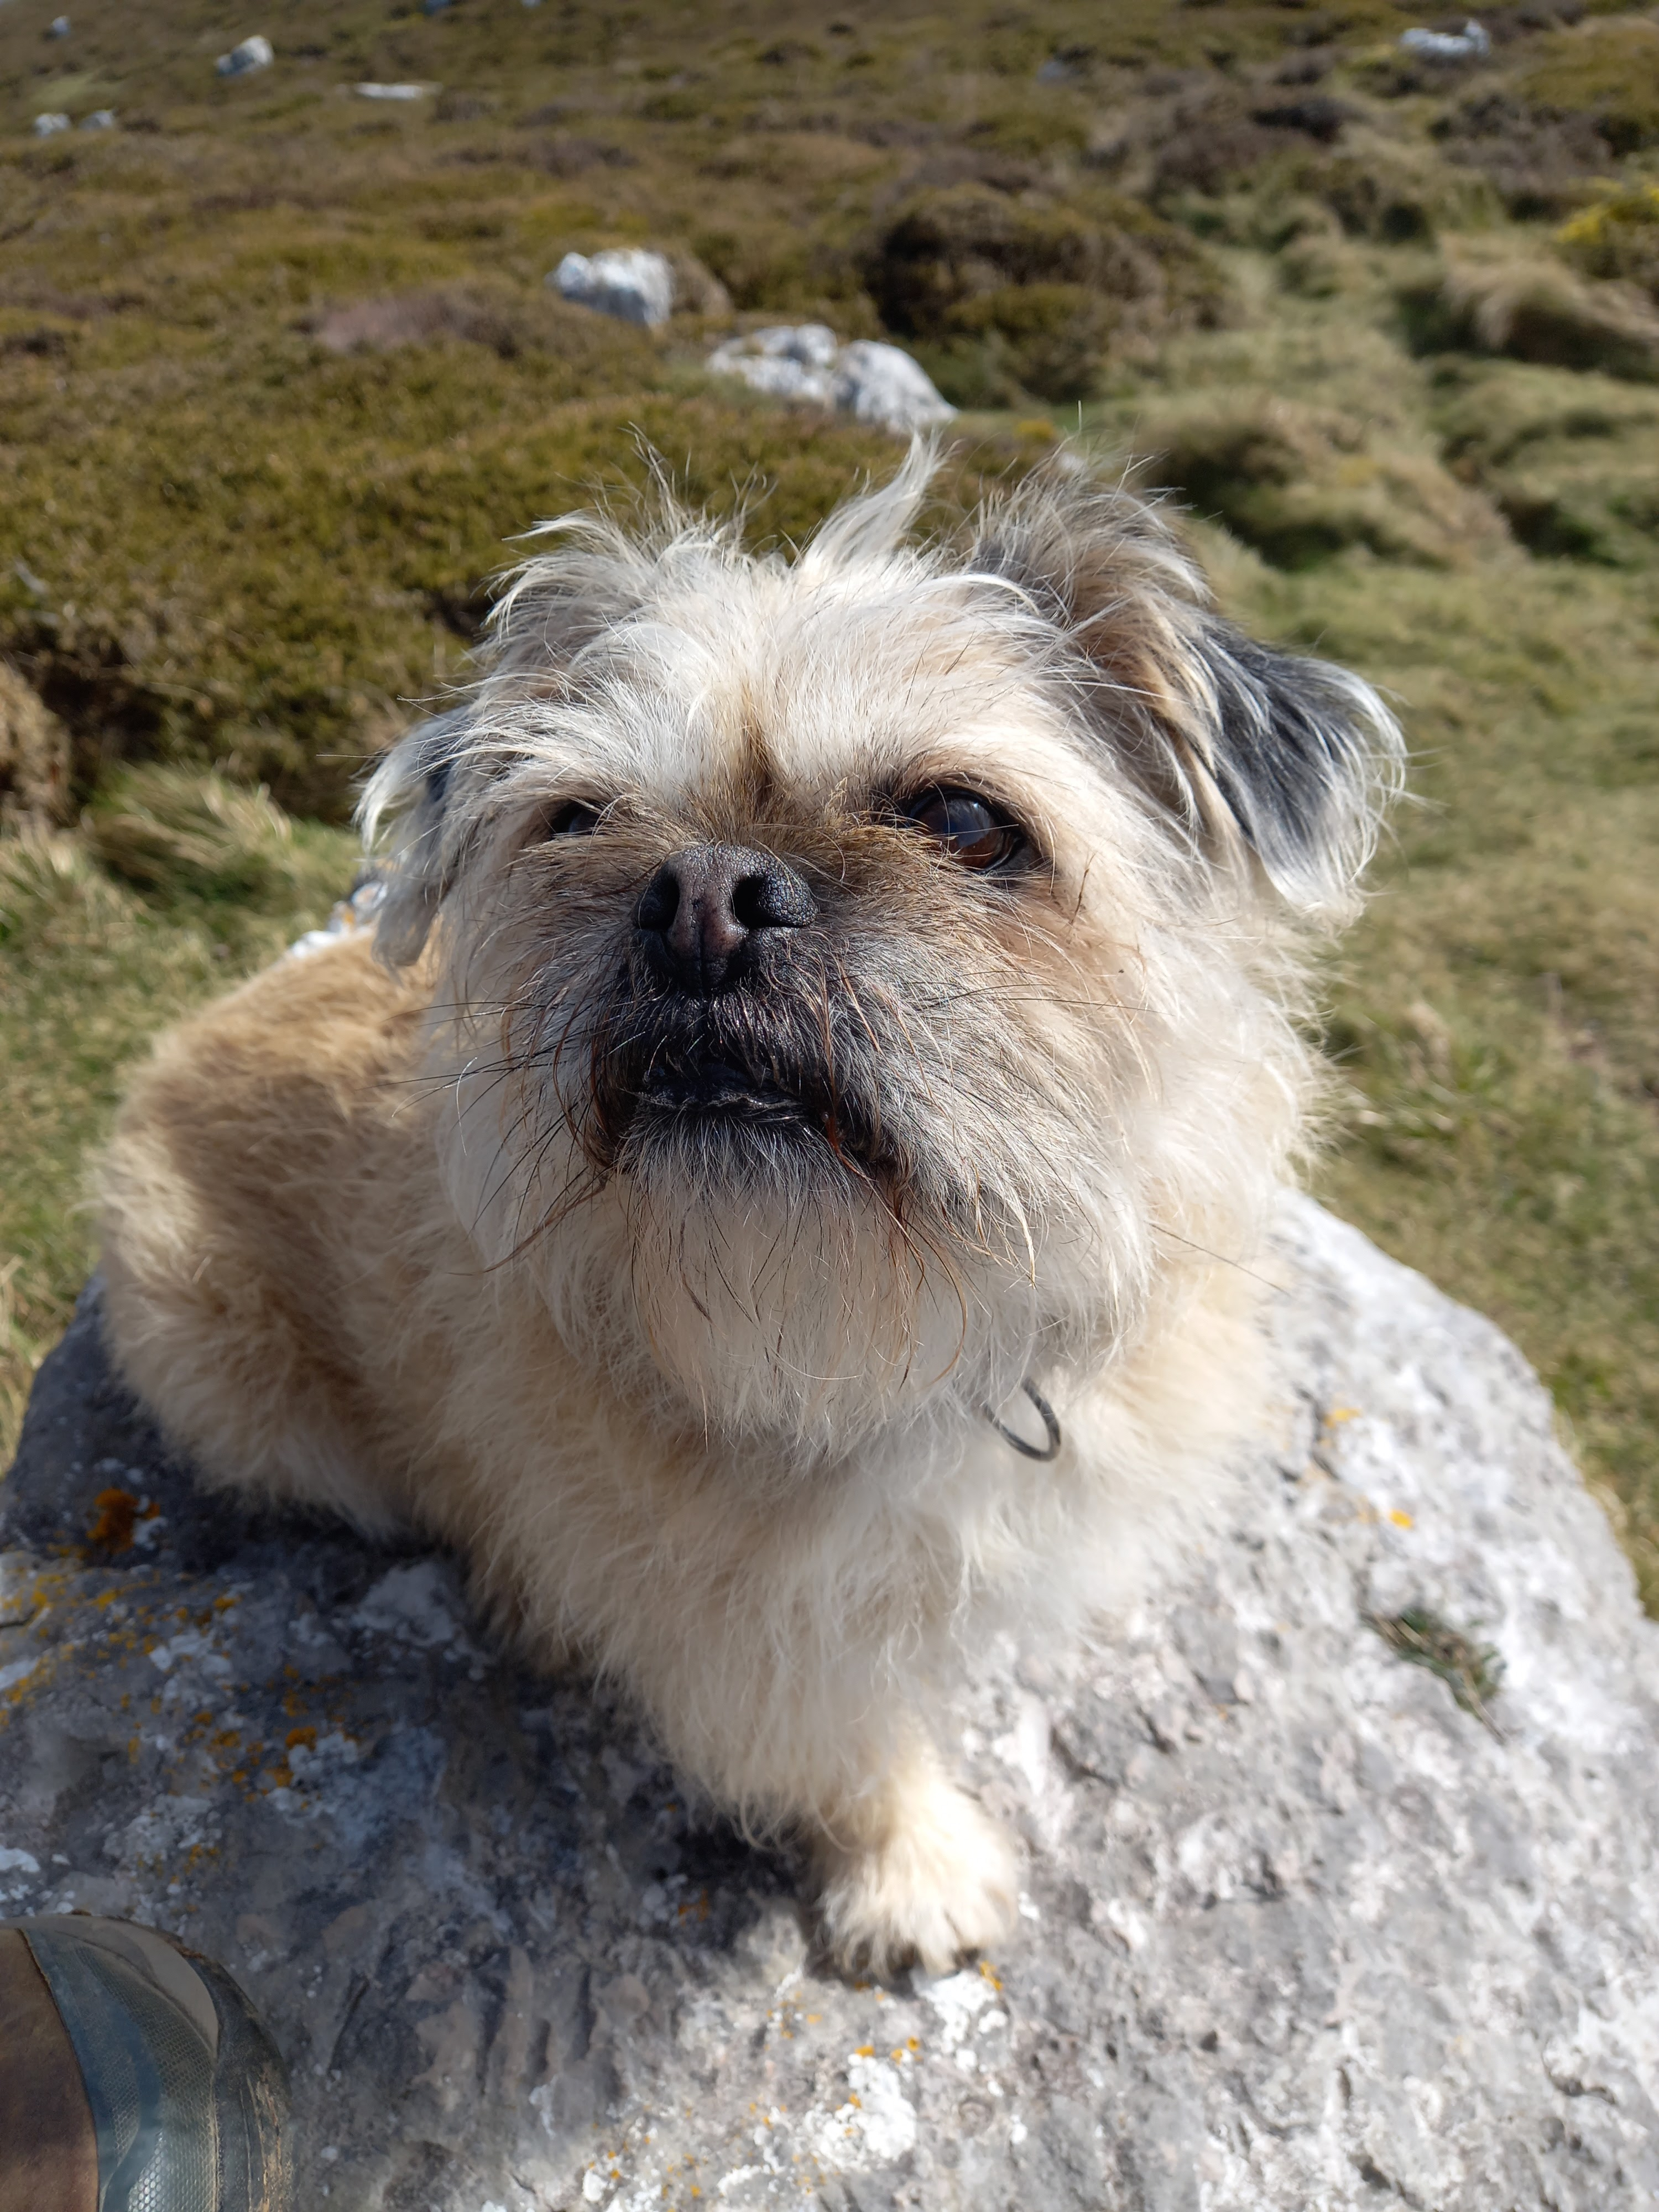 Diane Woodrow's dog, Renly, sitting on a rock looking up lovingly